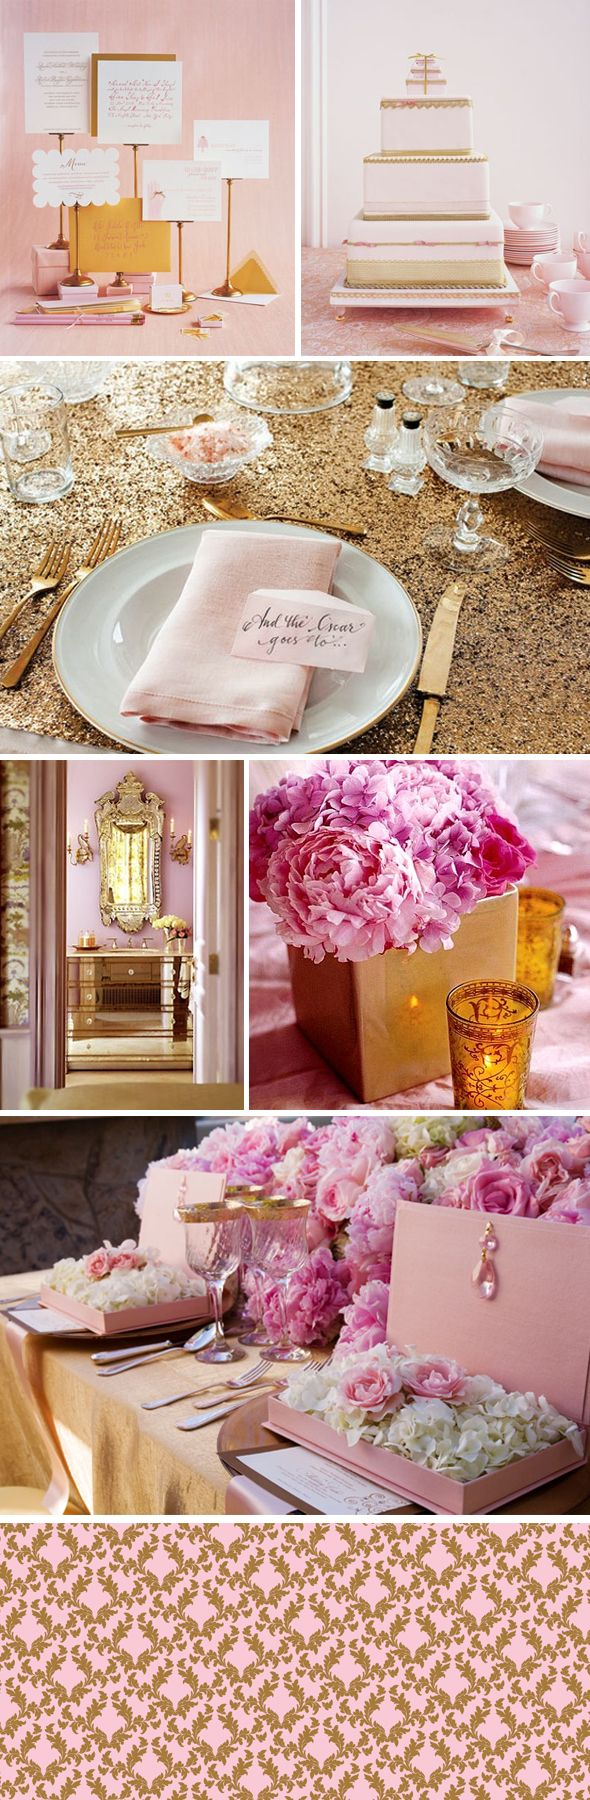 This is my dream wedding theme. Pink and gold. Girly and glamorous<3 shower idea: ask on invite: how did you meet; what made you fall in love